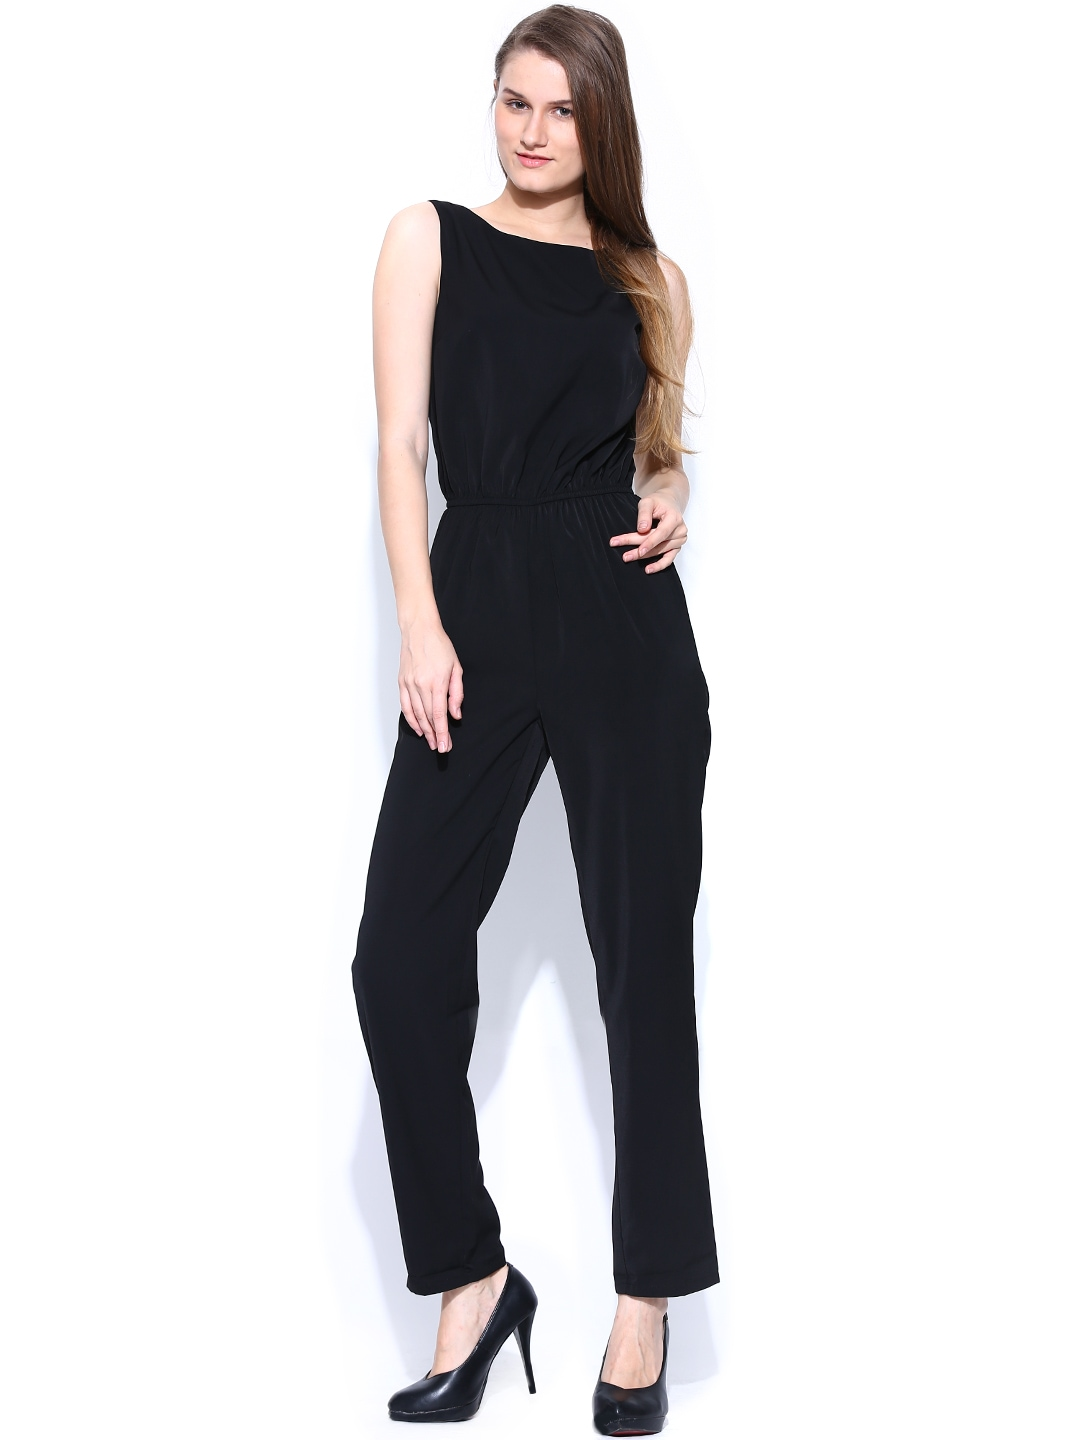 myntra vero moda women black jumpsuit 659805 buy myntra vero moda jumpsuit at best price. Black Bedroom Furniture Sets. Home Design Ideas